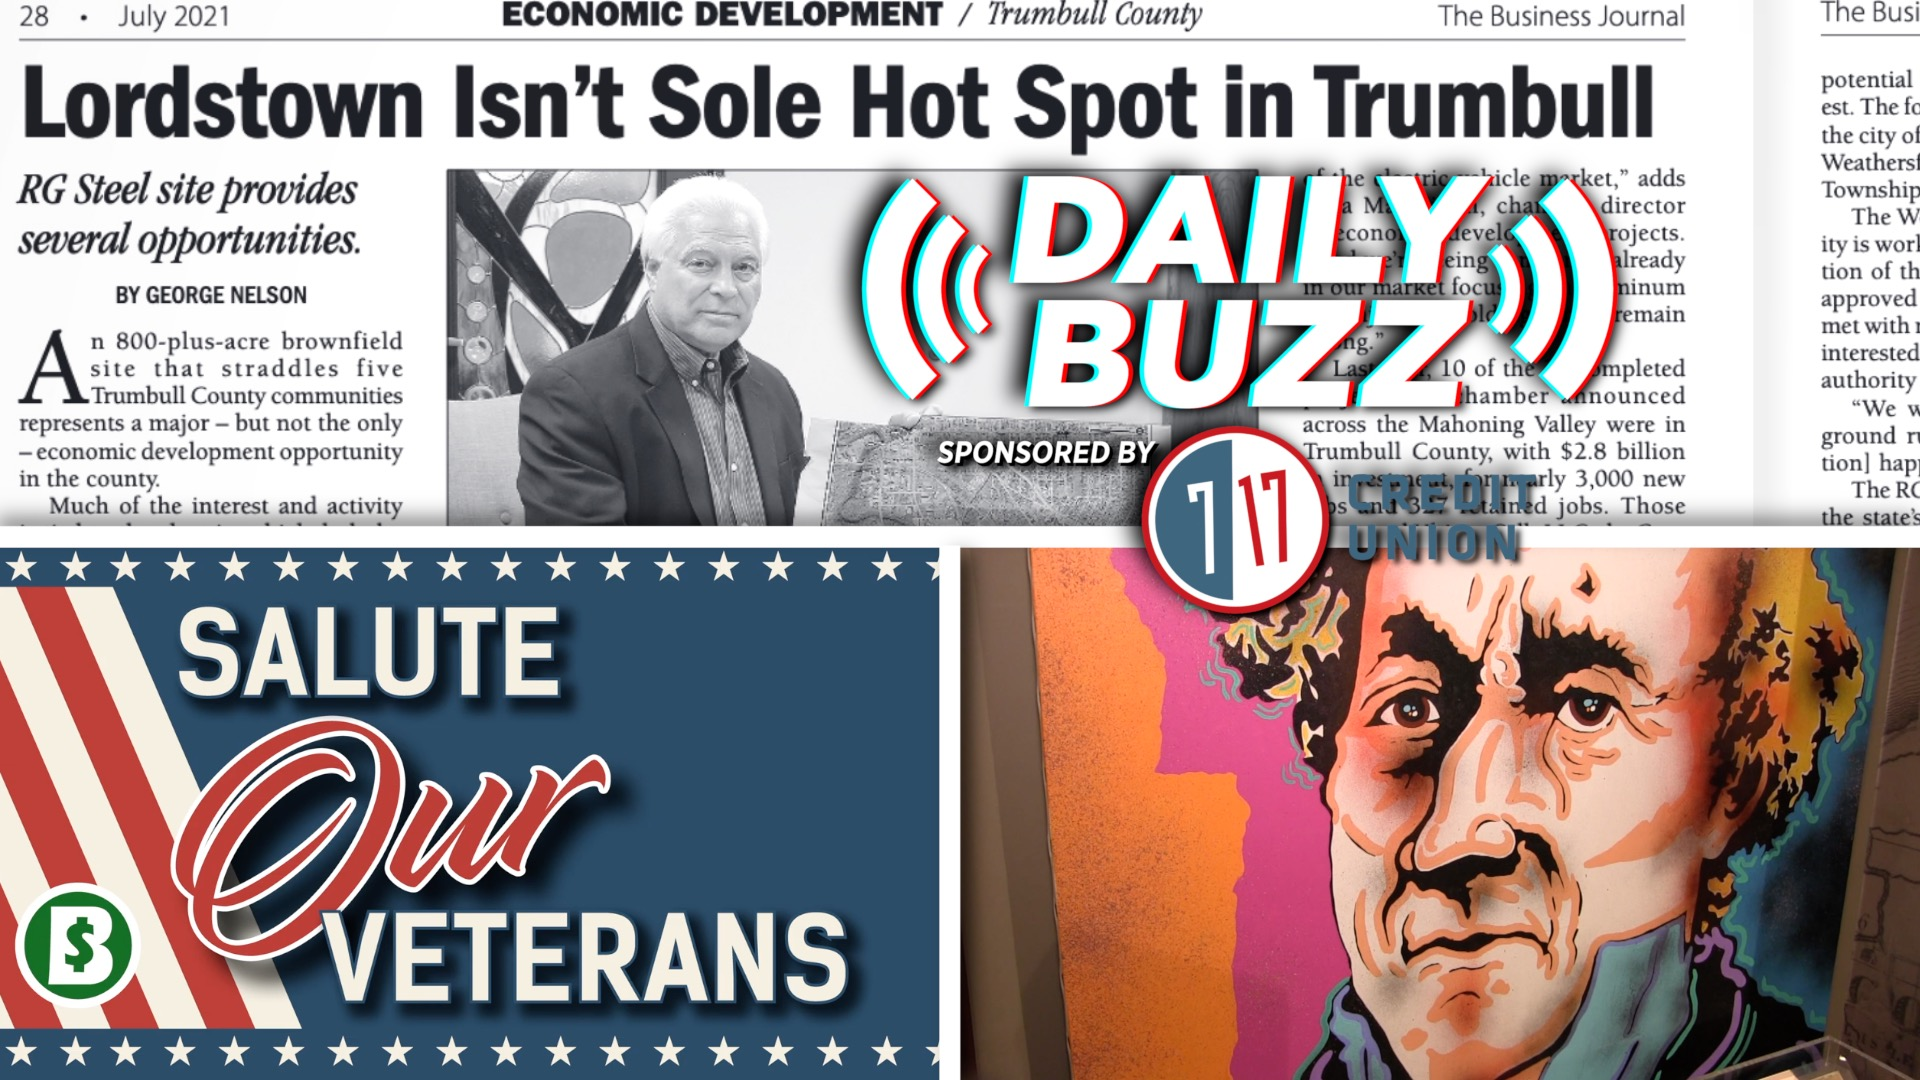 Daily Buzz 7-2-21   Trumbull County Development in the July Issue, Salute Our Veterans in Flashback